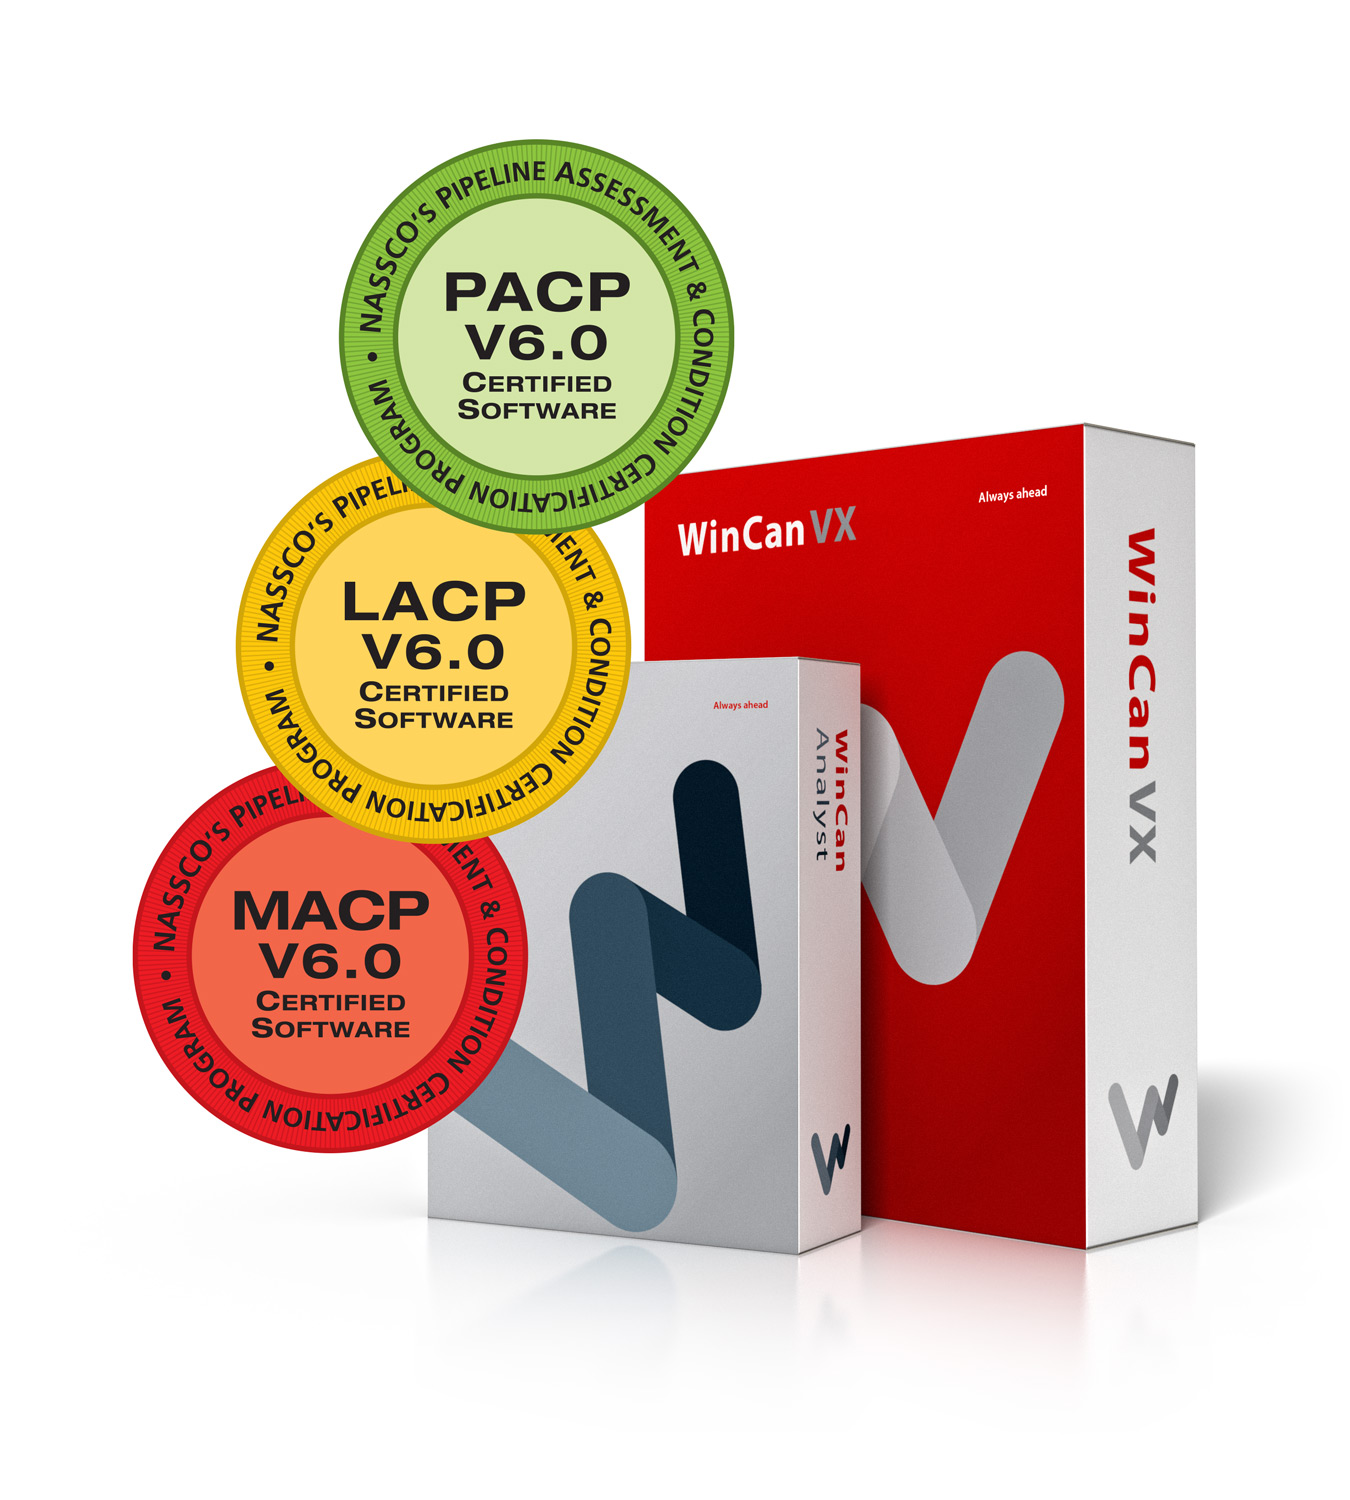 New WinCan VX Awarded Full NASSCO Certification for PACP, LACP and MACP